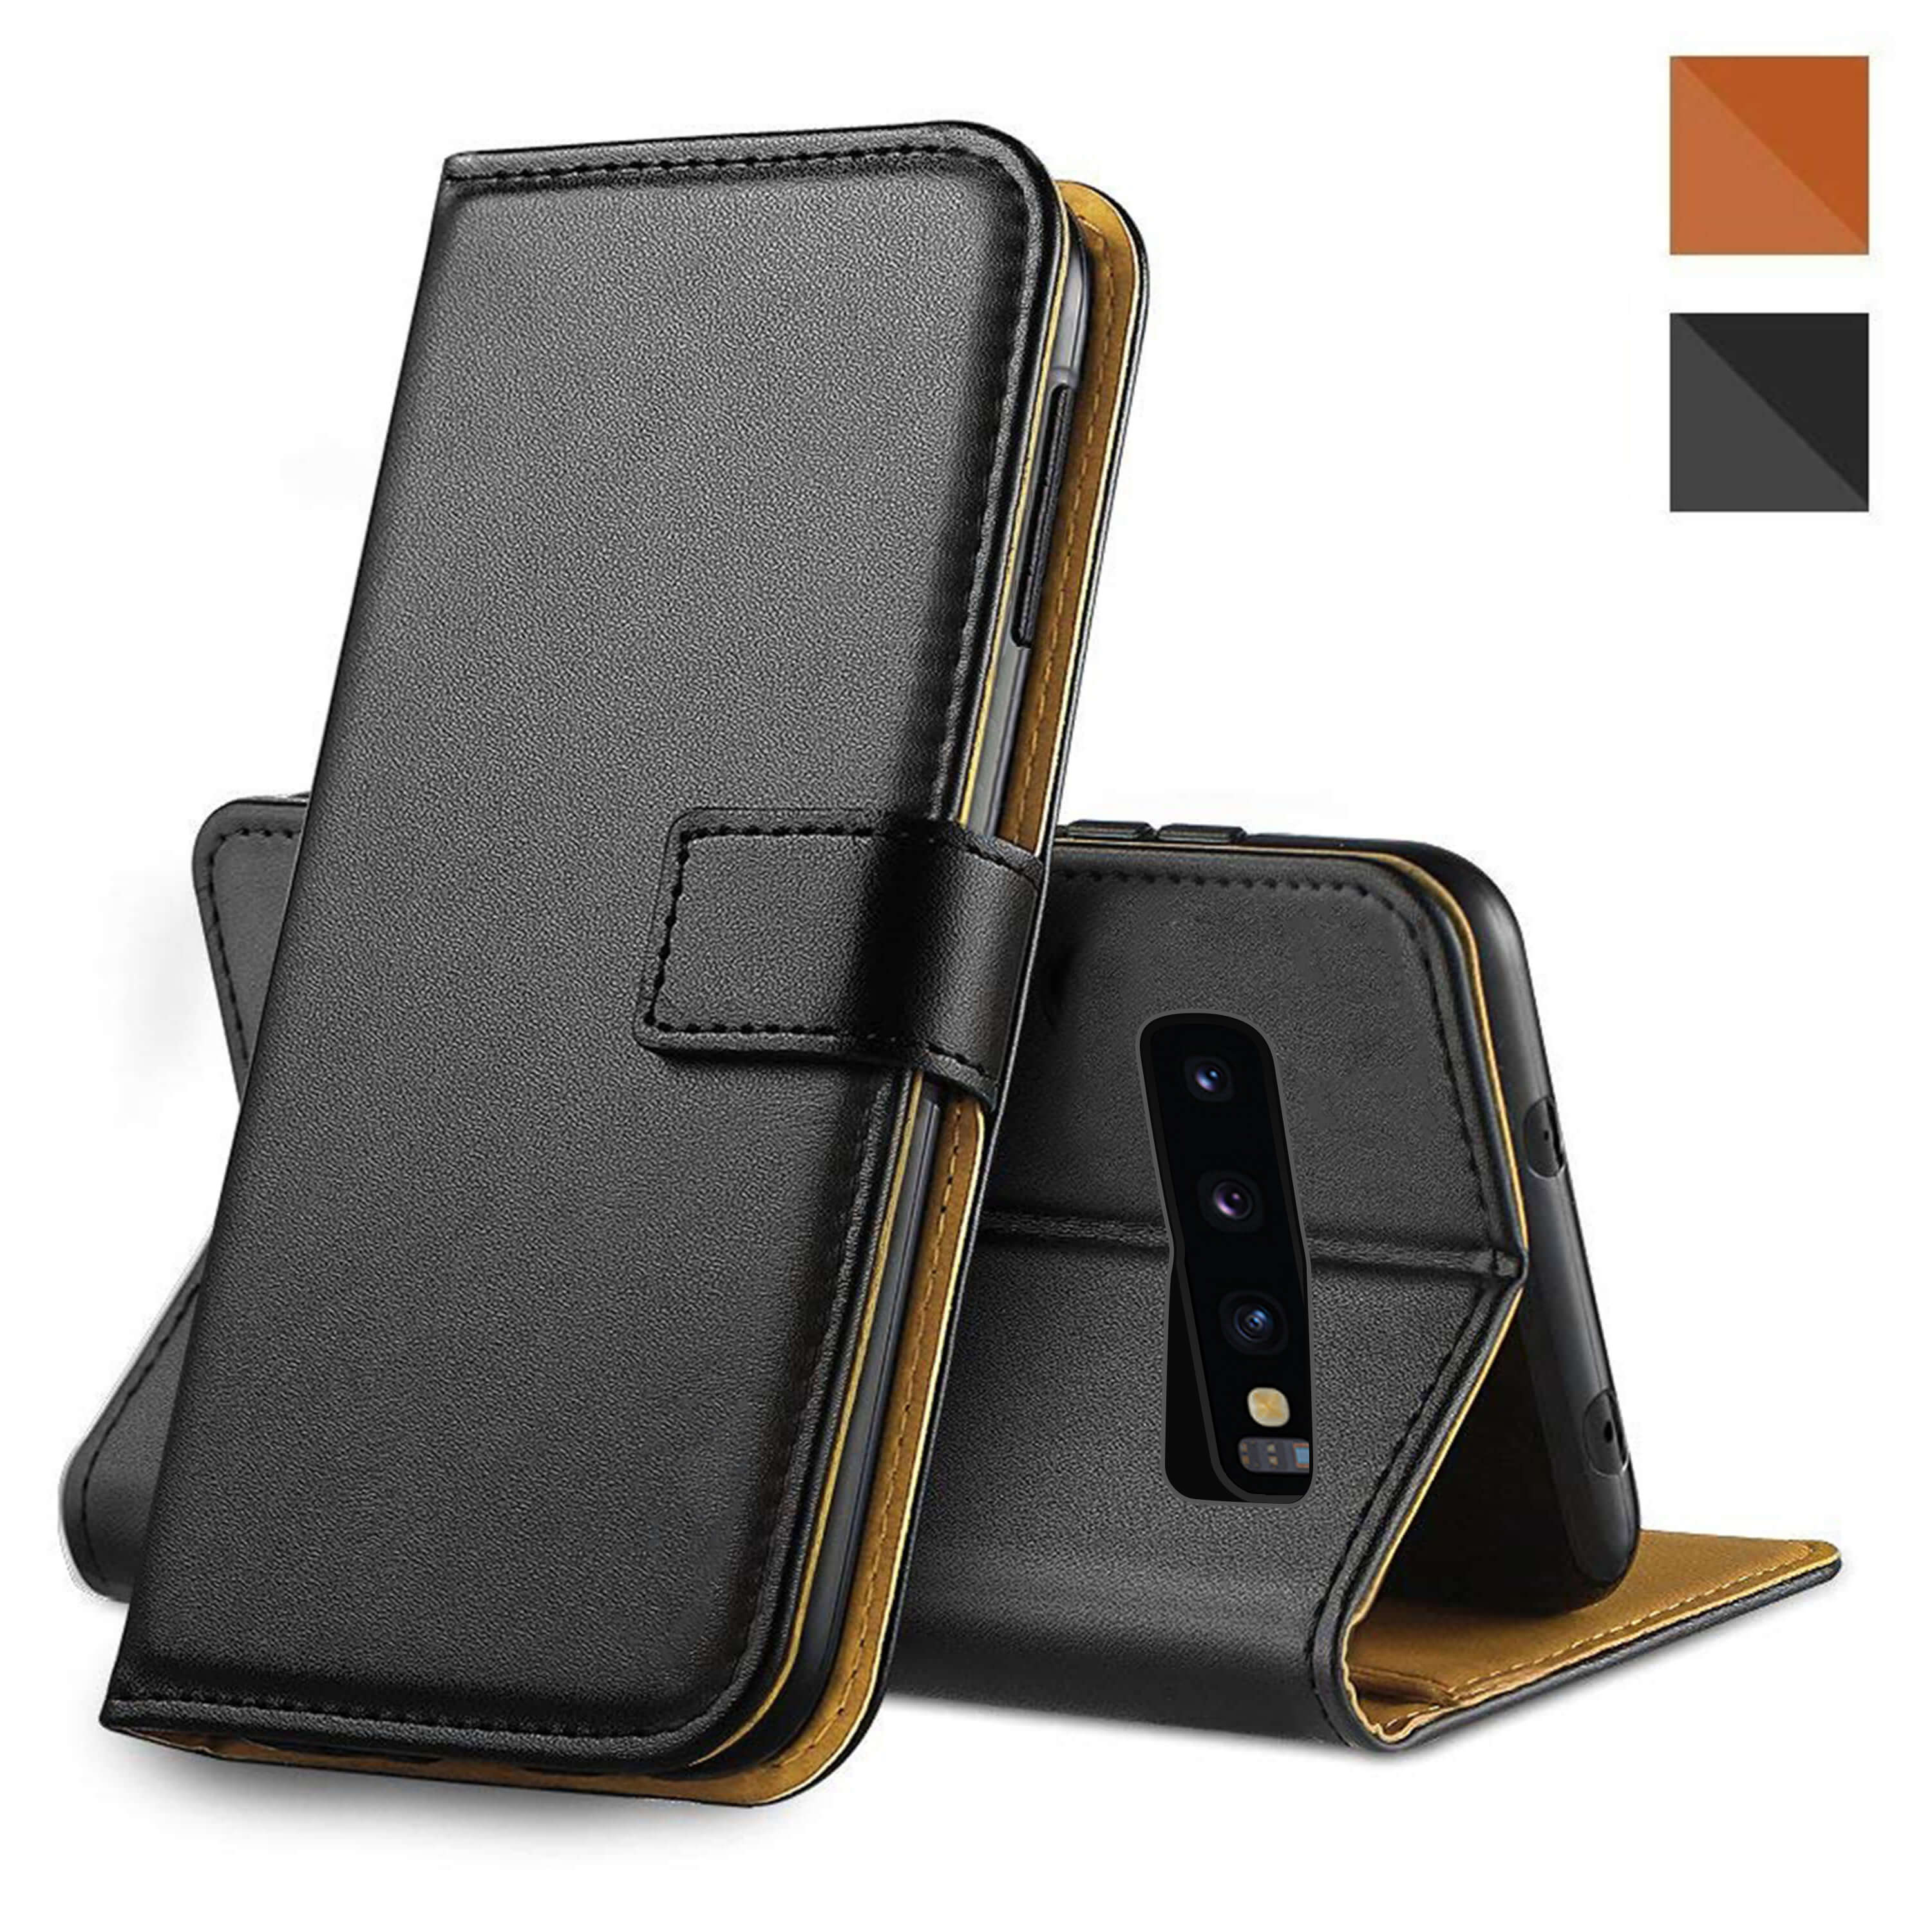 Leather-Flip-Wallet-Magnetic-Case-Cover-For-Samsung-Galaxy-S10-Plus-S9-S8-A50 thumbnail 23